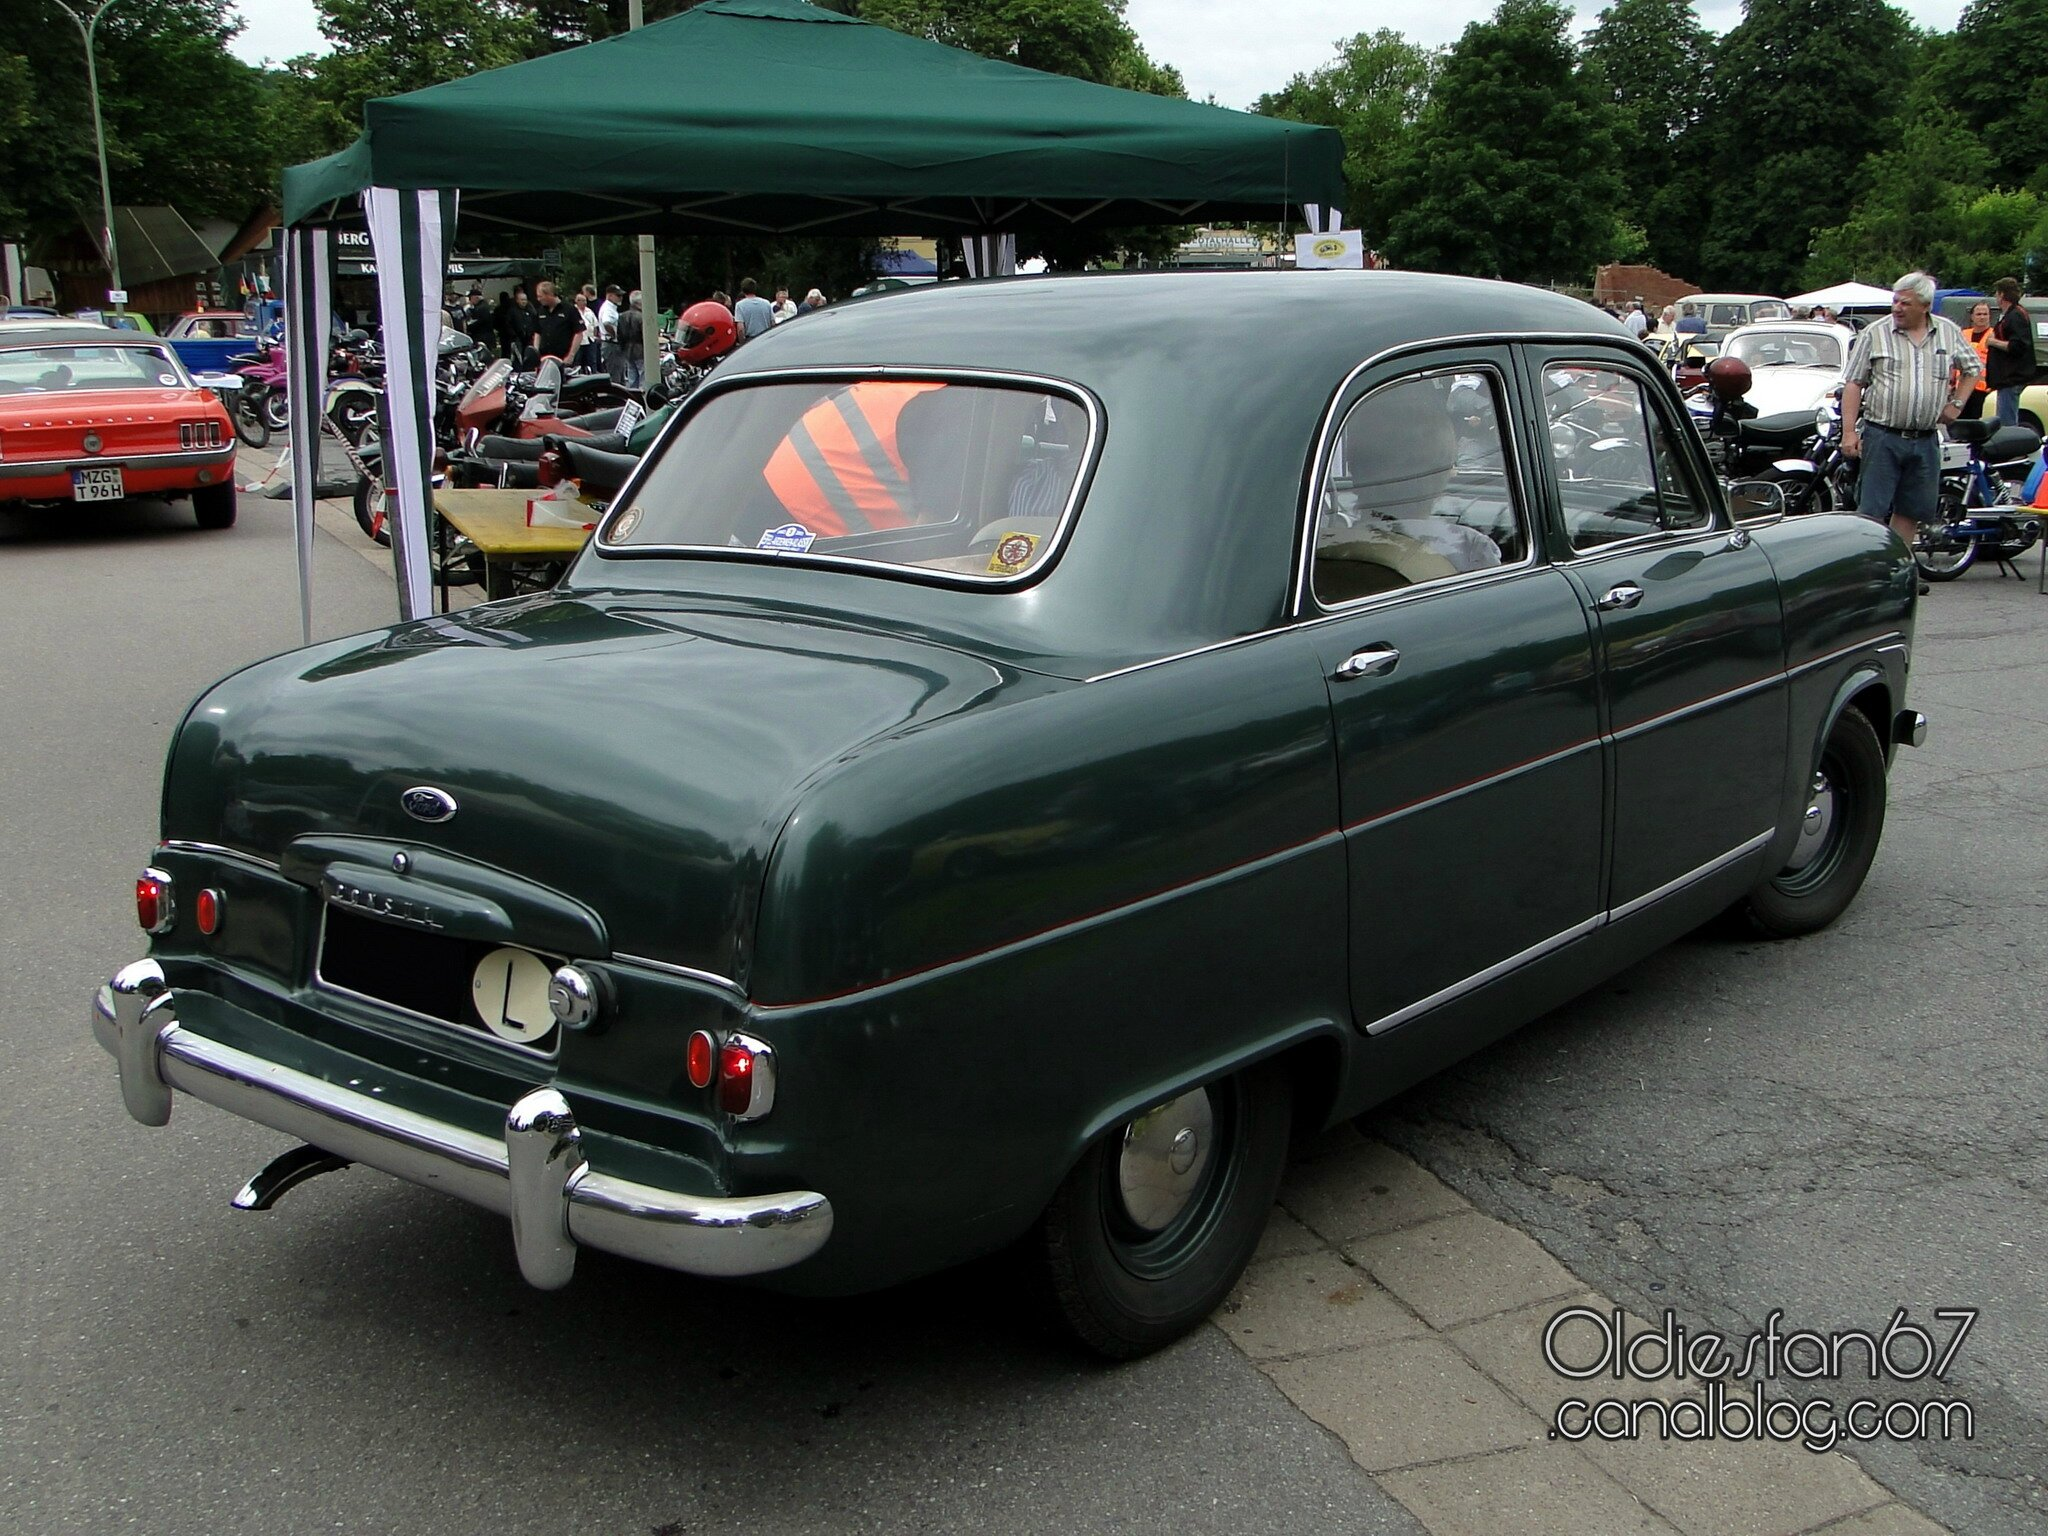 ford consul mk1 4door saloon 1953 oldiesfan67 mon blog auto. Black Bedroom Furniture Sets. Home Design Ideas